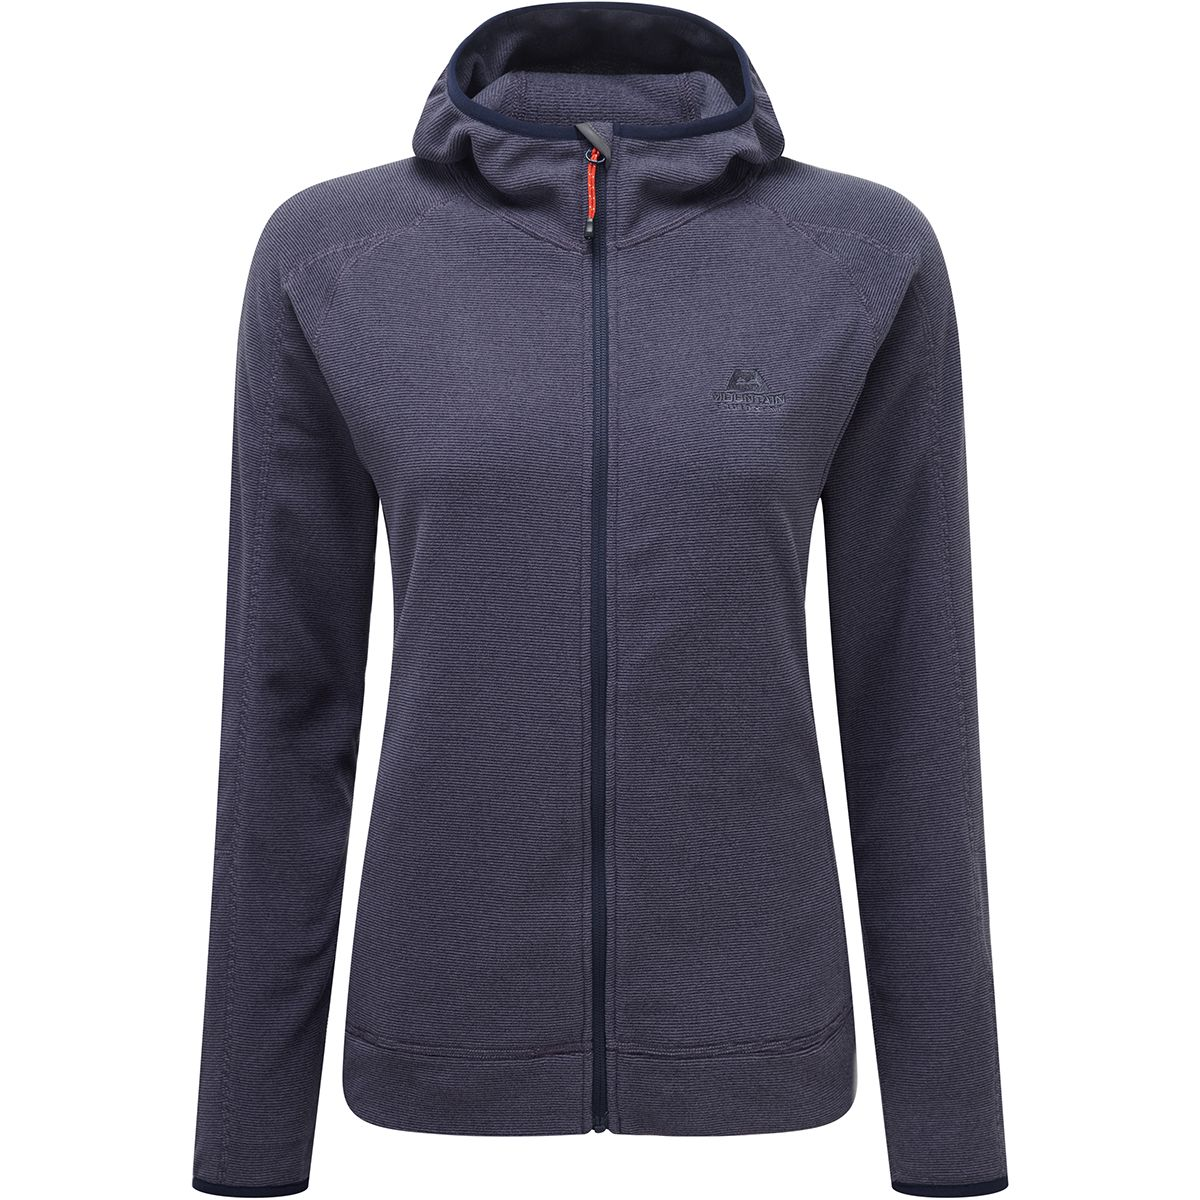 Mountain Equipment Damen Diablo Hooded Jacke (Größe XS, Blau) | Fleecejacken > Damen